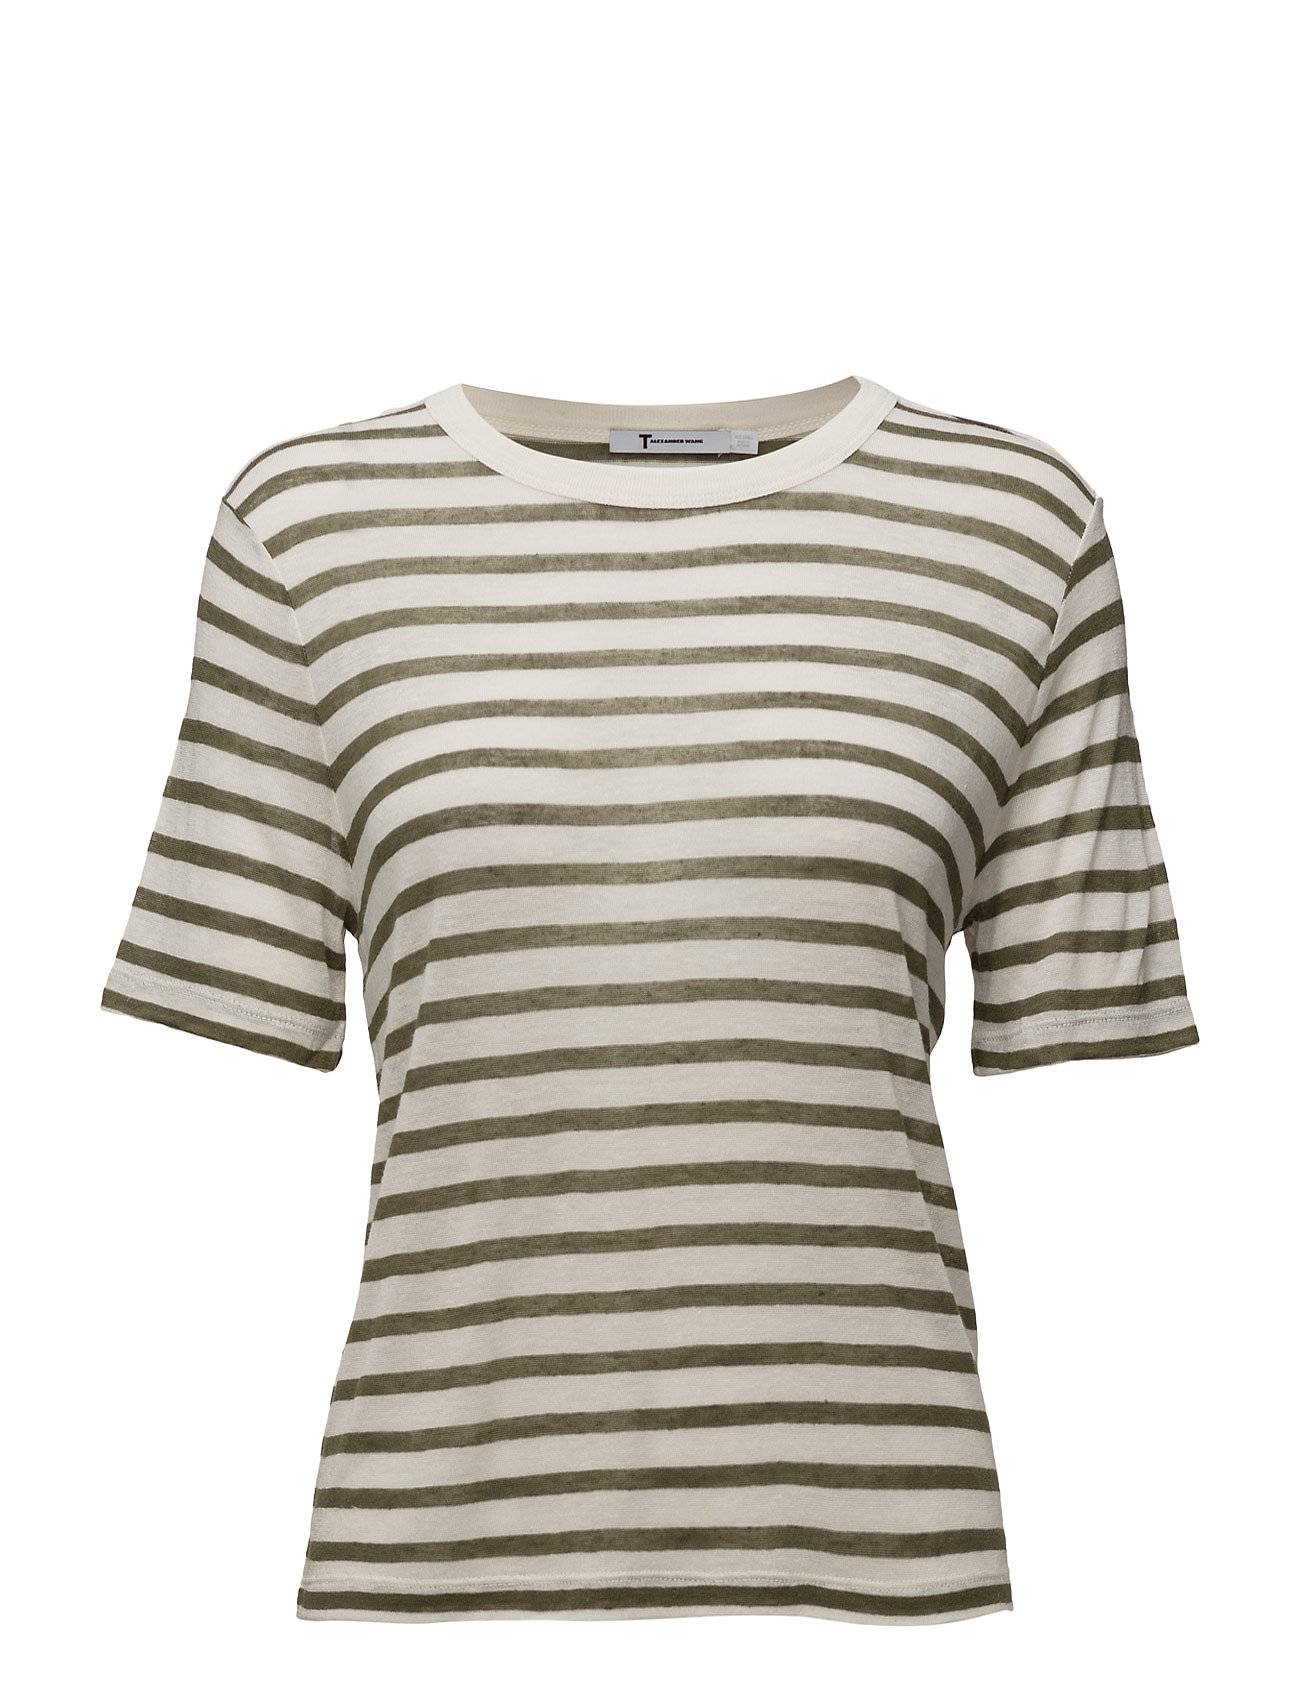 T by Alexander Wang Rayon Linen Stripe Shortsleeve Cropped Tee